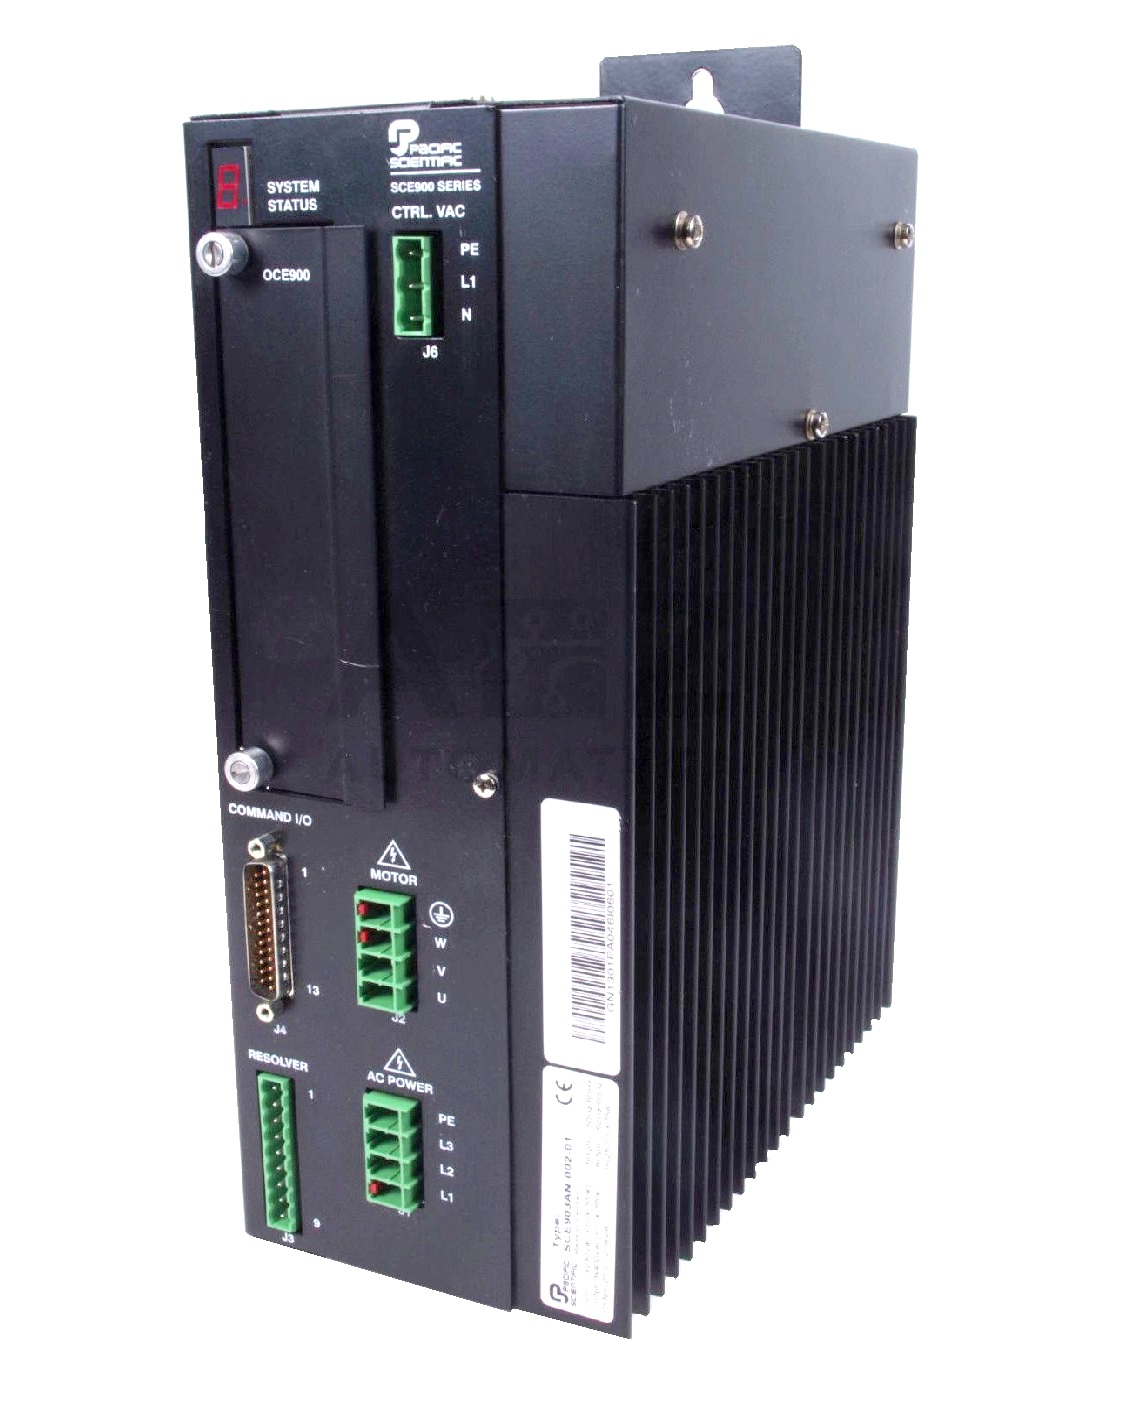 SCE900 Series Servo Drives